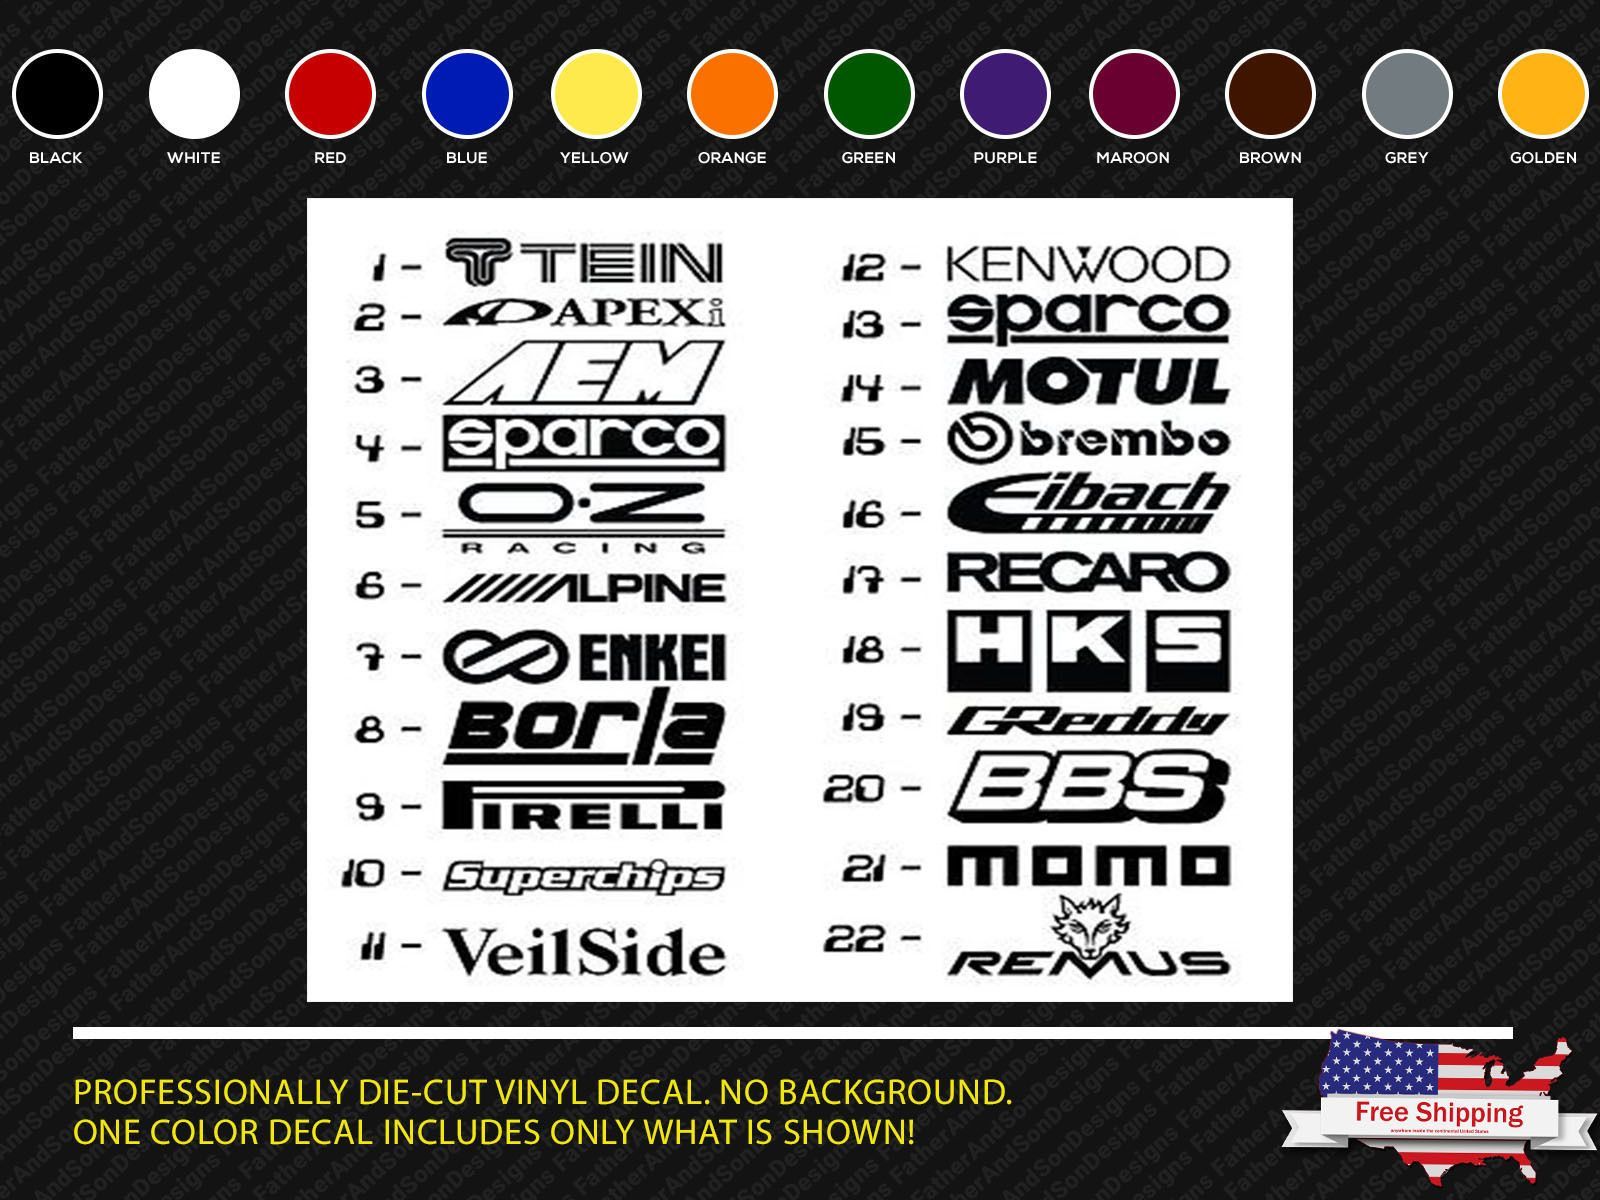 Check Out Jdm Car Stickers Sponsor Decals Aftermarket Racing Performance Logos 12 Pcs In My Etsy Shop Today Https Www Etsy Com Car Stickers Jdm Jdm Cars [ 1200 x 1600 Pixel ]